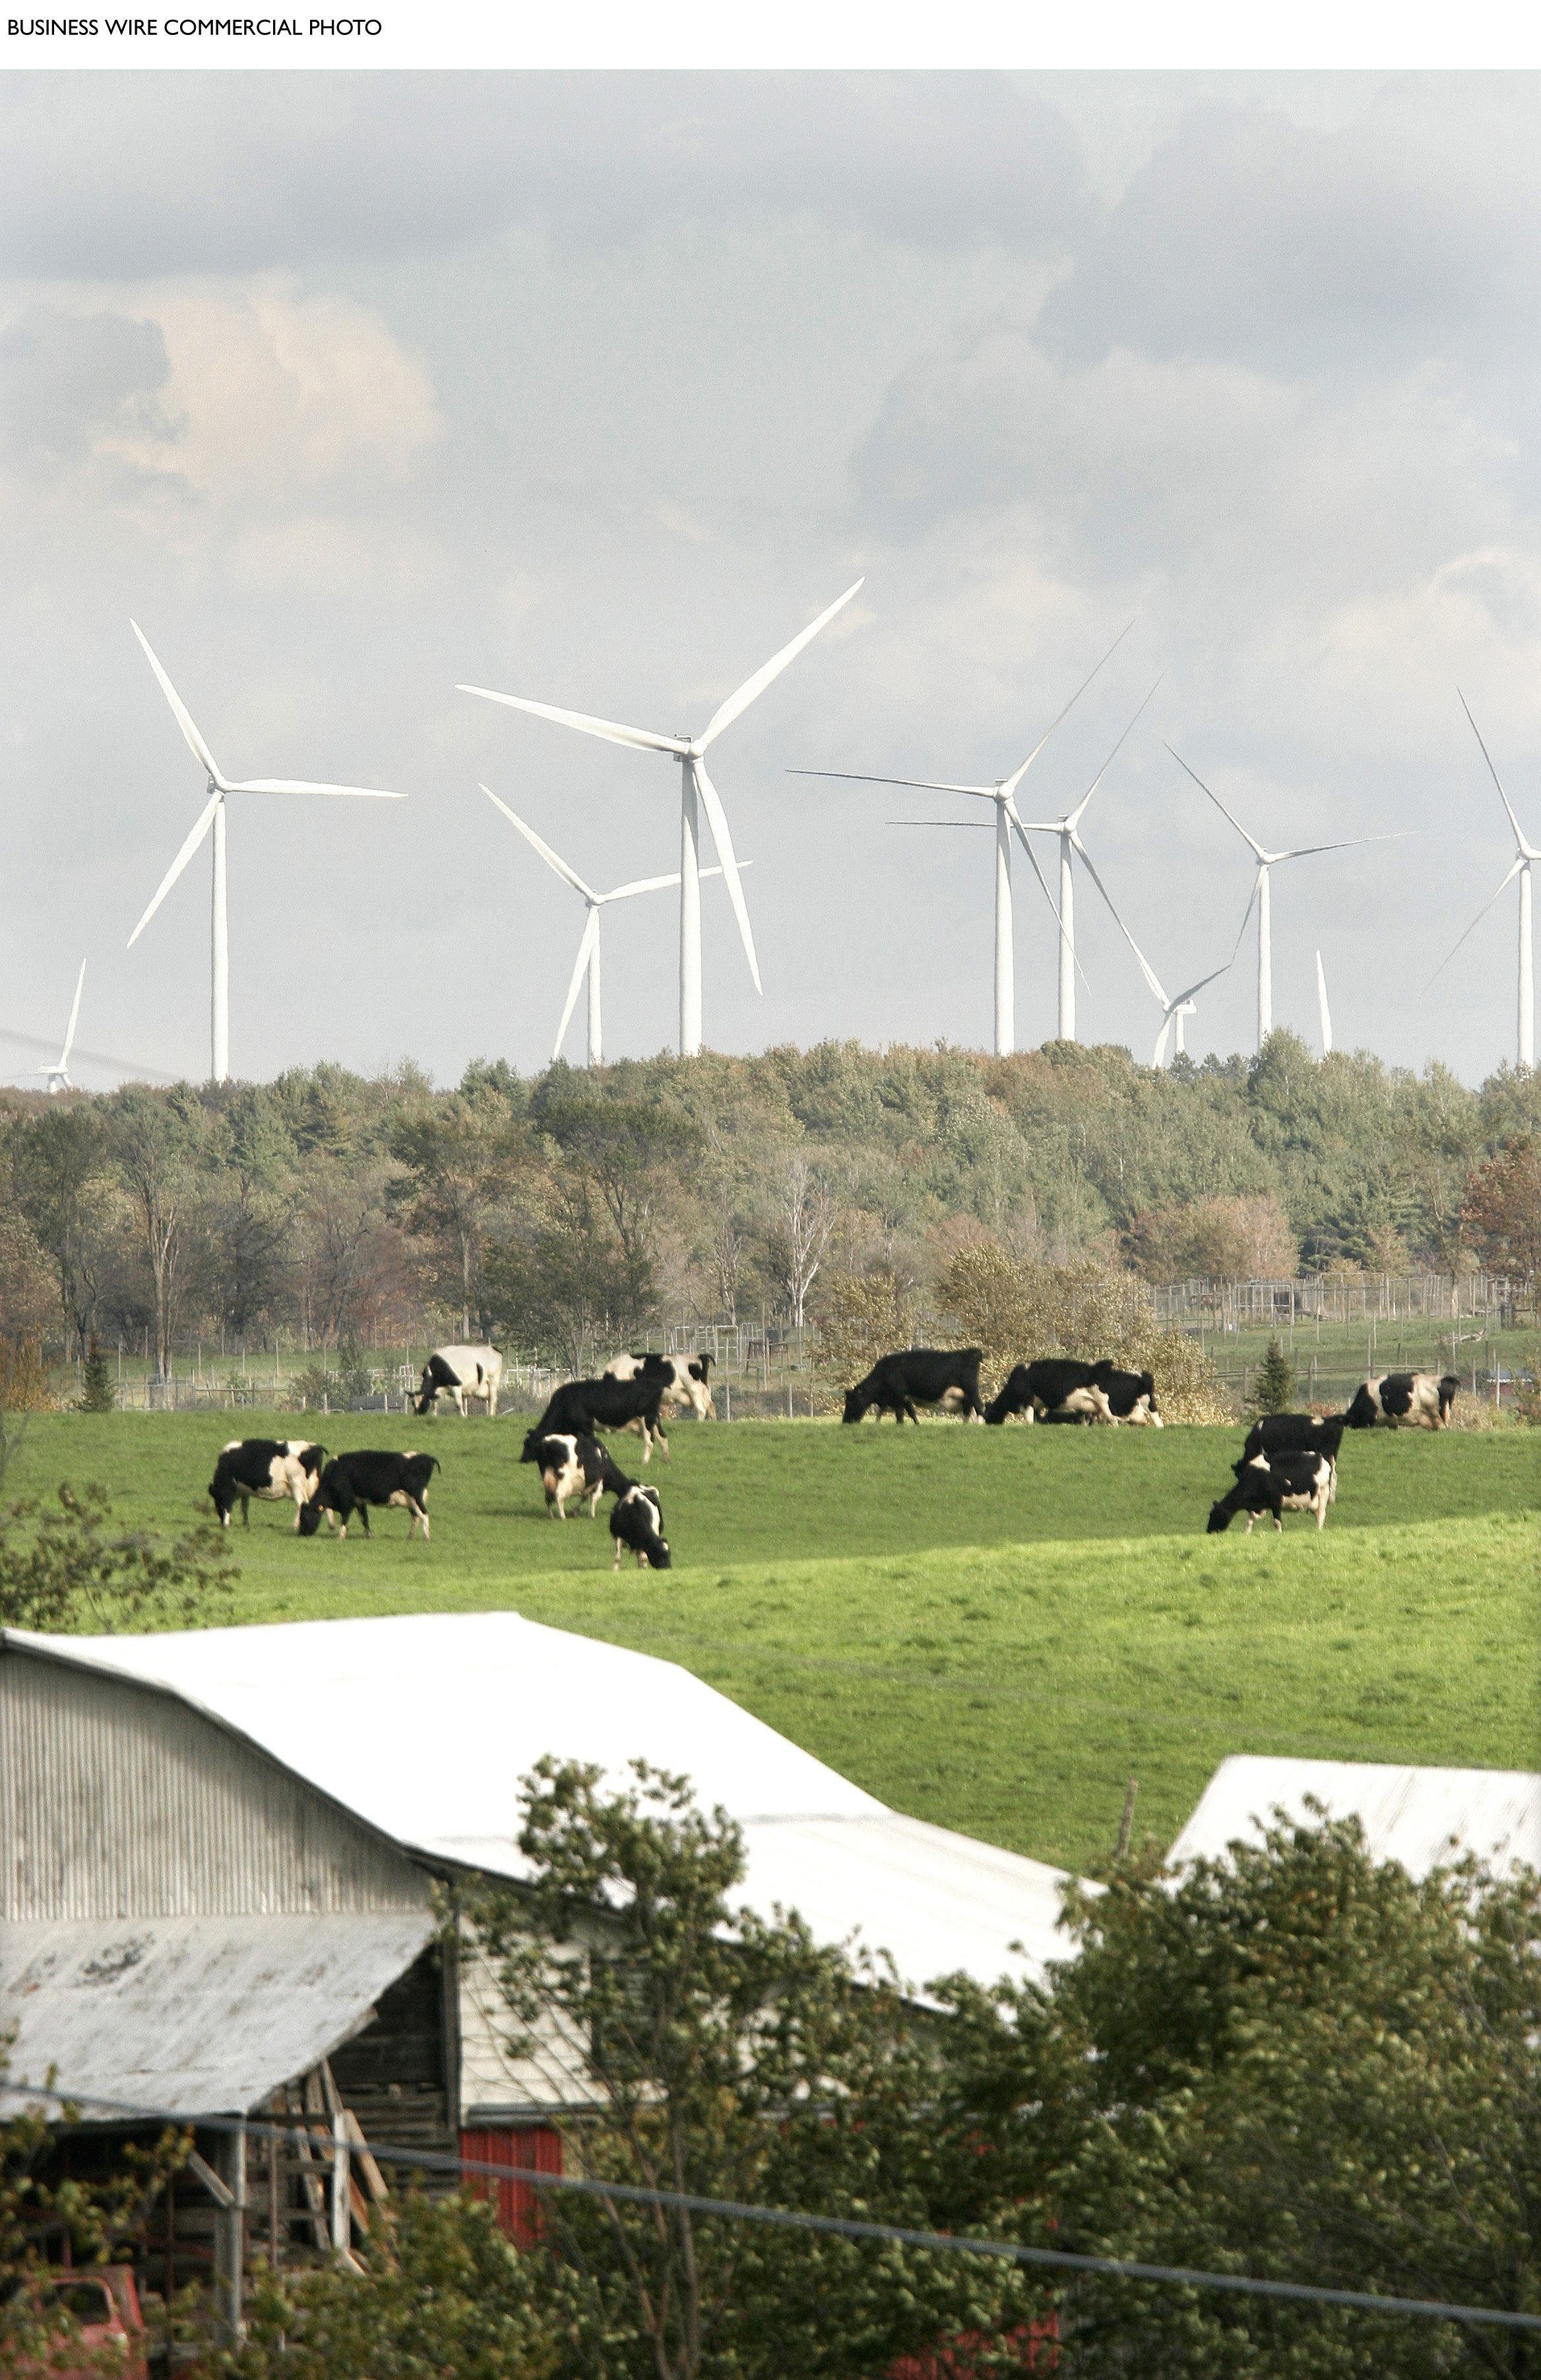 "The biggest windfarm in New York state, owned by ScottishPower's US subsidiary and its local partner, was formally opened today (Tuesday) near Syracuse. Maple Ridge's initial 140 turbines will soon be increased to 195, generating 320MW of clean, renewable electricity to power 160,000 average New York households. The project, which will meet around two per cent of the state's residential power needs, is co-owned by ScottishPower subsidiary PPM Energy and Horizon Wind Energy (owned by Goldman Sachs). New York state plans to generate a quarter of its electricity through renewable power by 2013, one of the most aggressive ""green"" policies in the US."